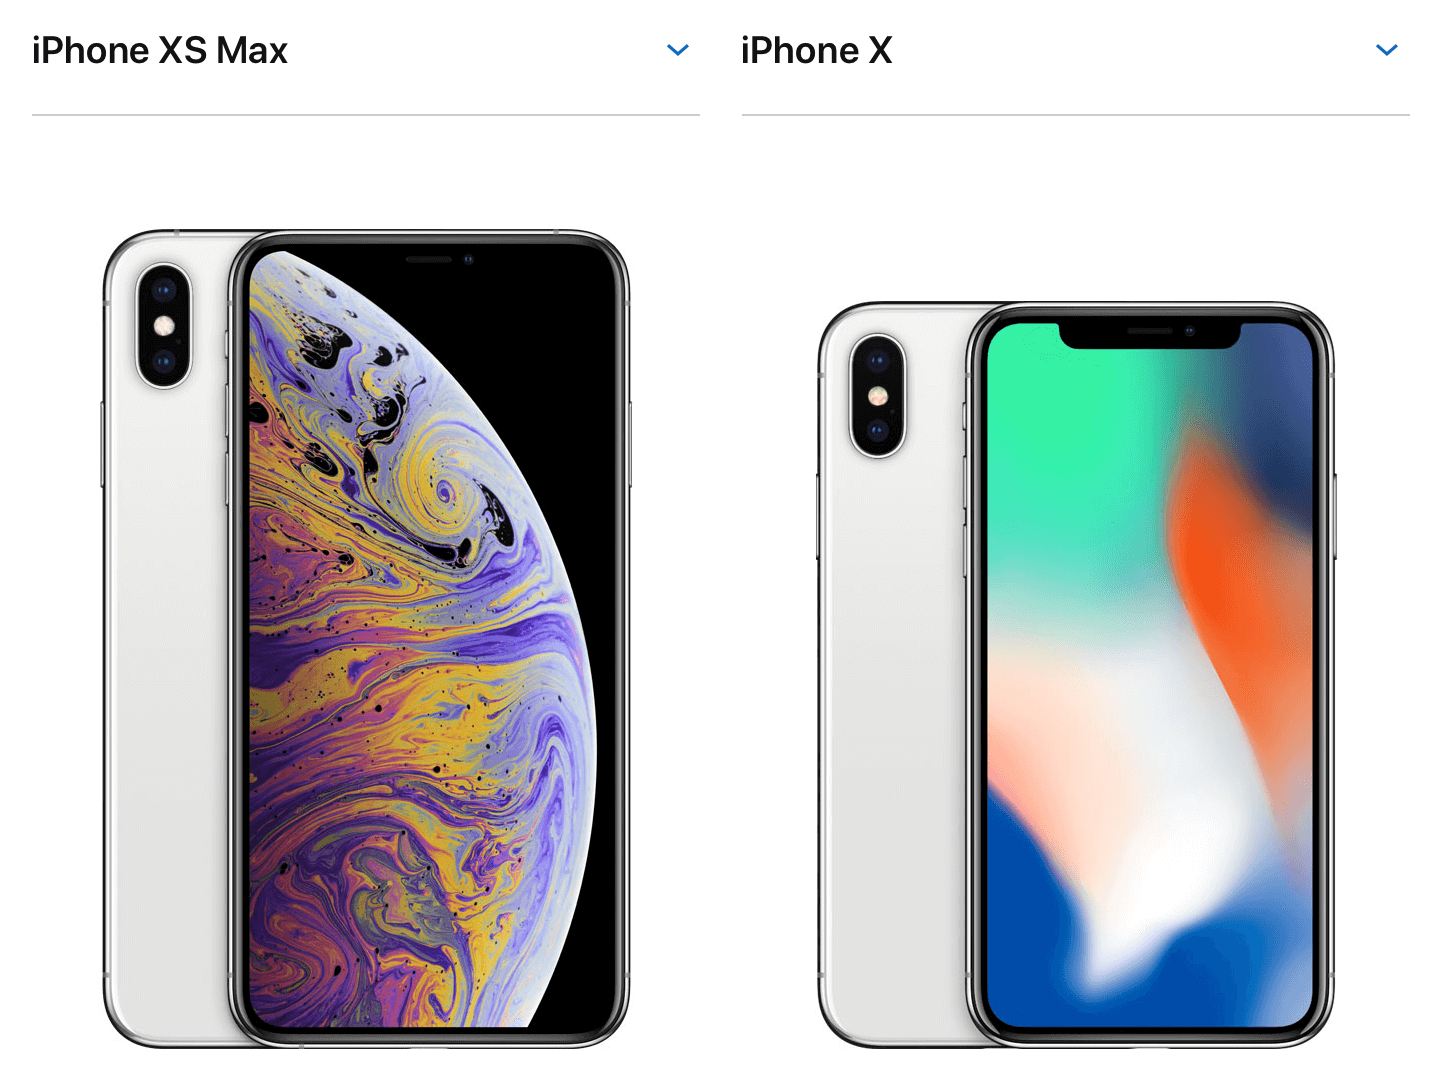 iPhone XS MAX&iPhone X image